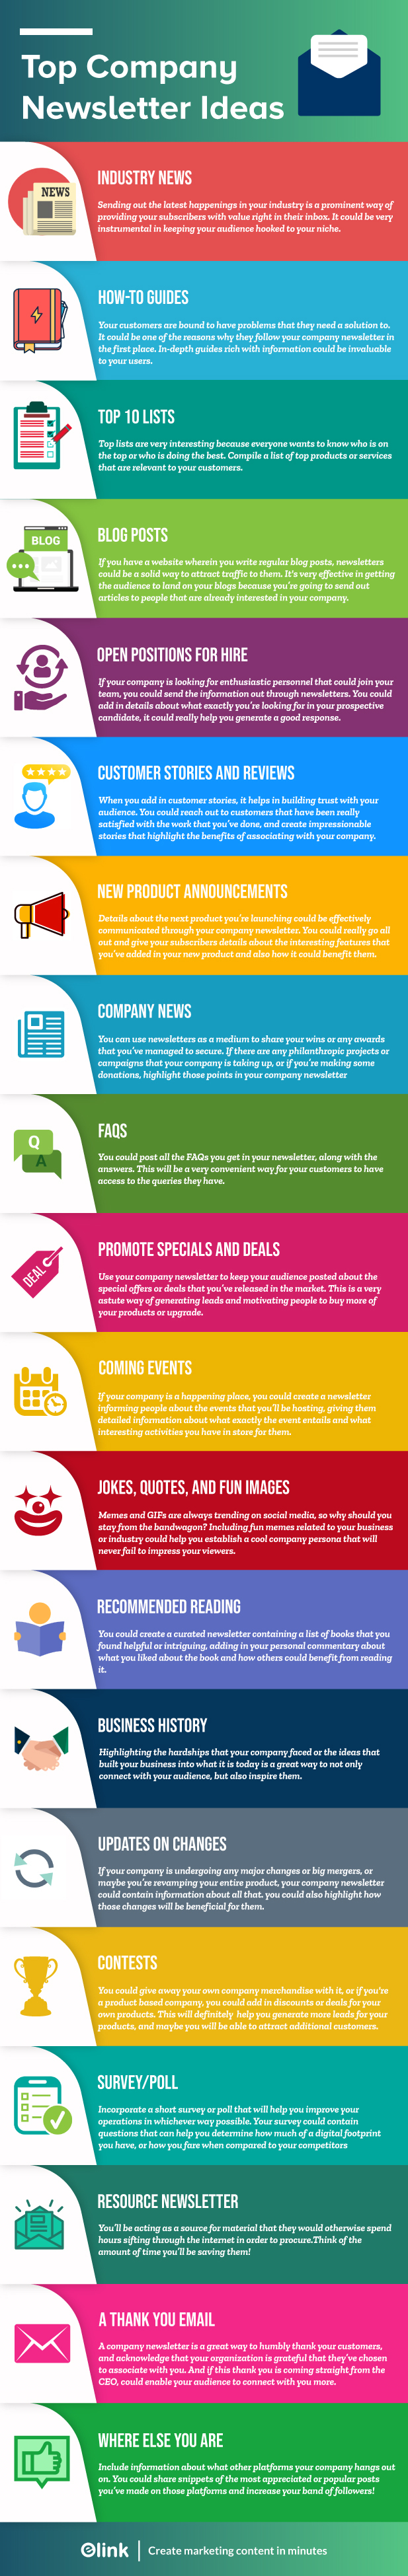 Company newsletter ideas infographic